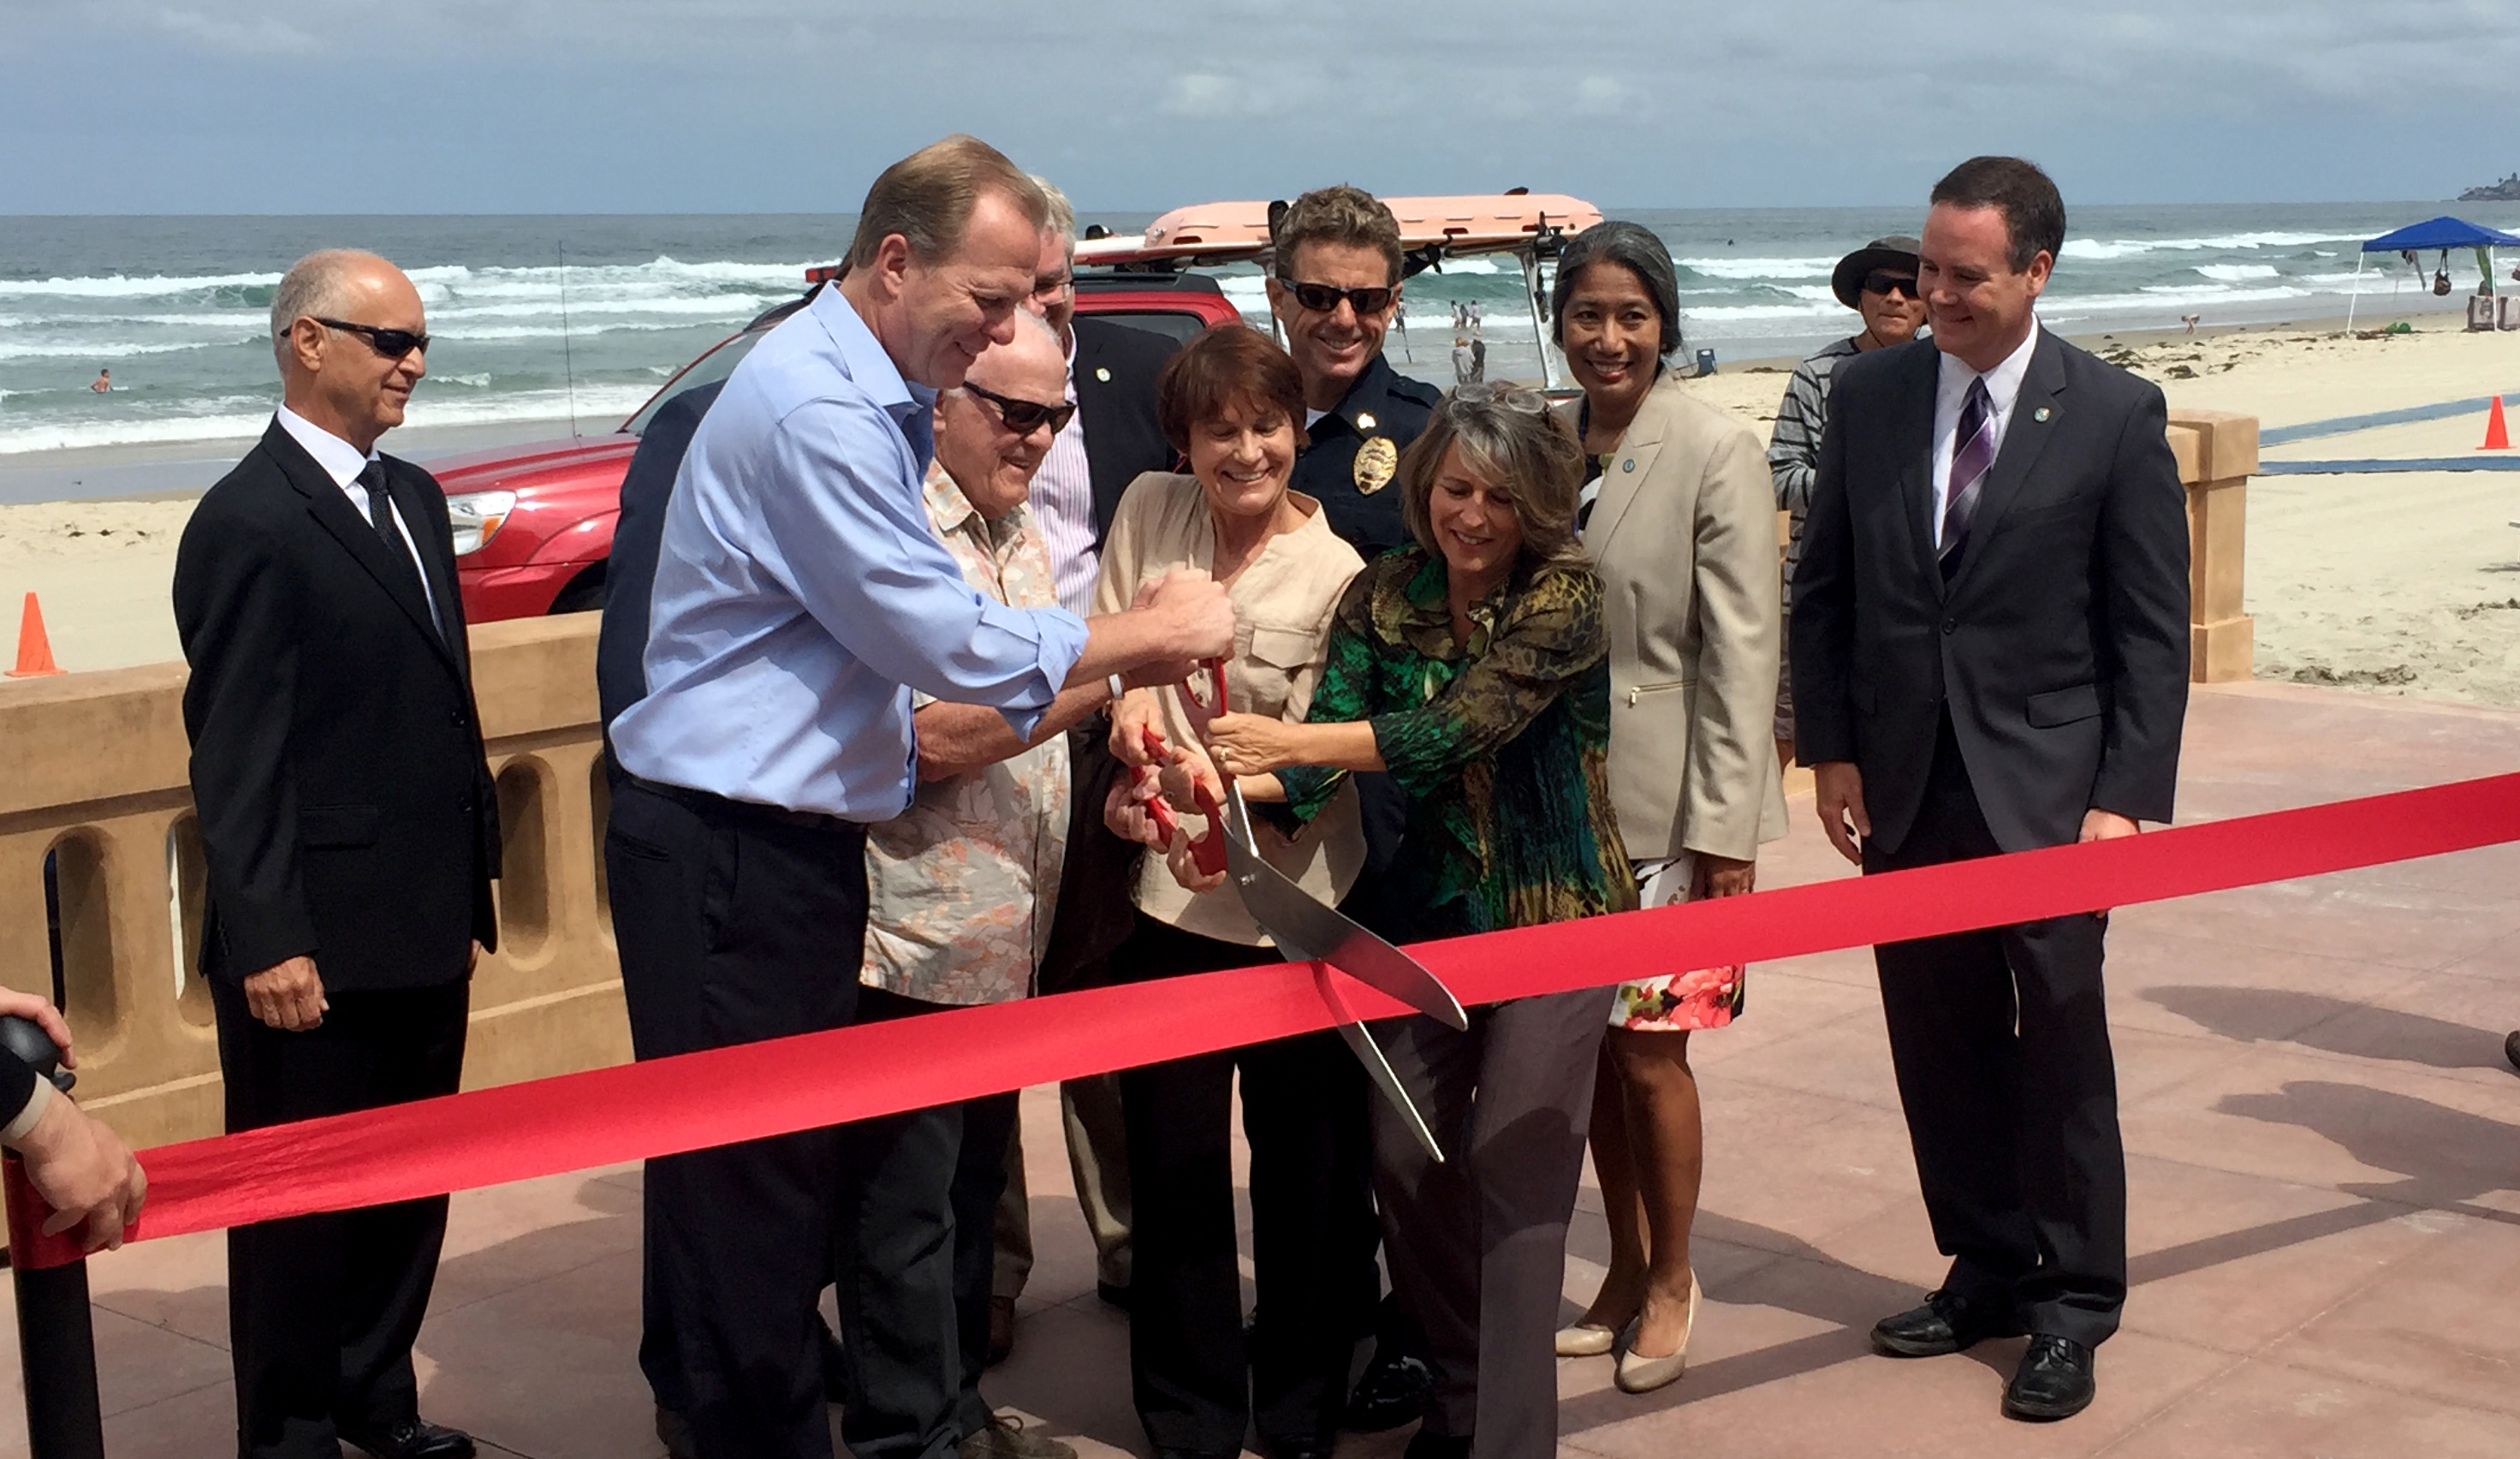 Mayor Kevin Faulconer, Councilmember Lorie Zapf and community leaders cut the ribbon on the reconstructed Mission Beach boardwalk.